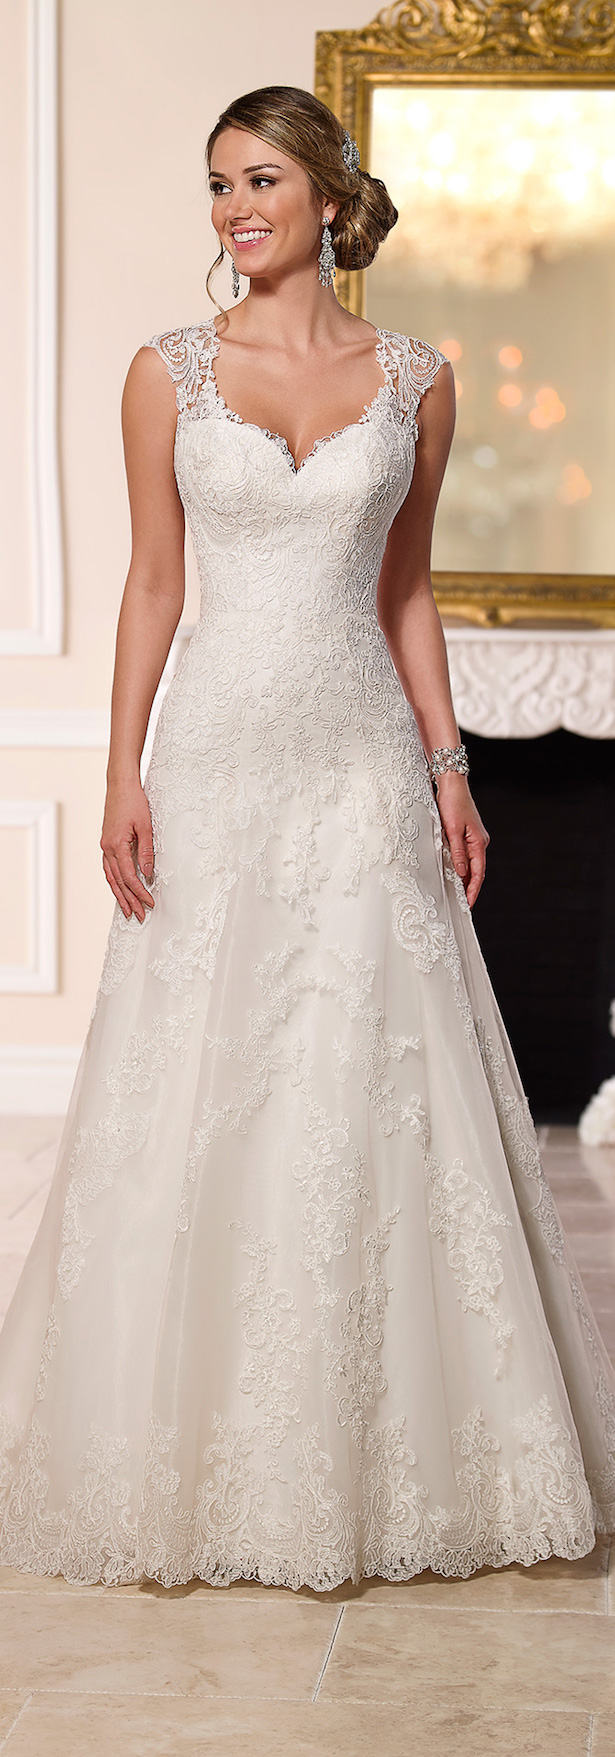 Stella York Spring 2016 Wedding Dress